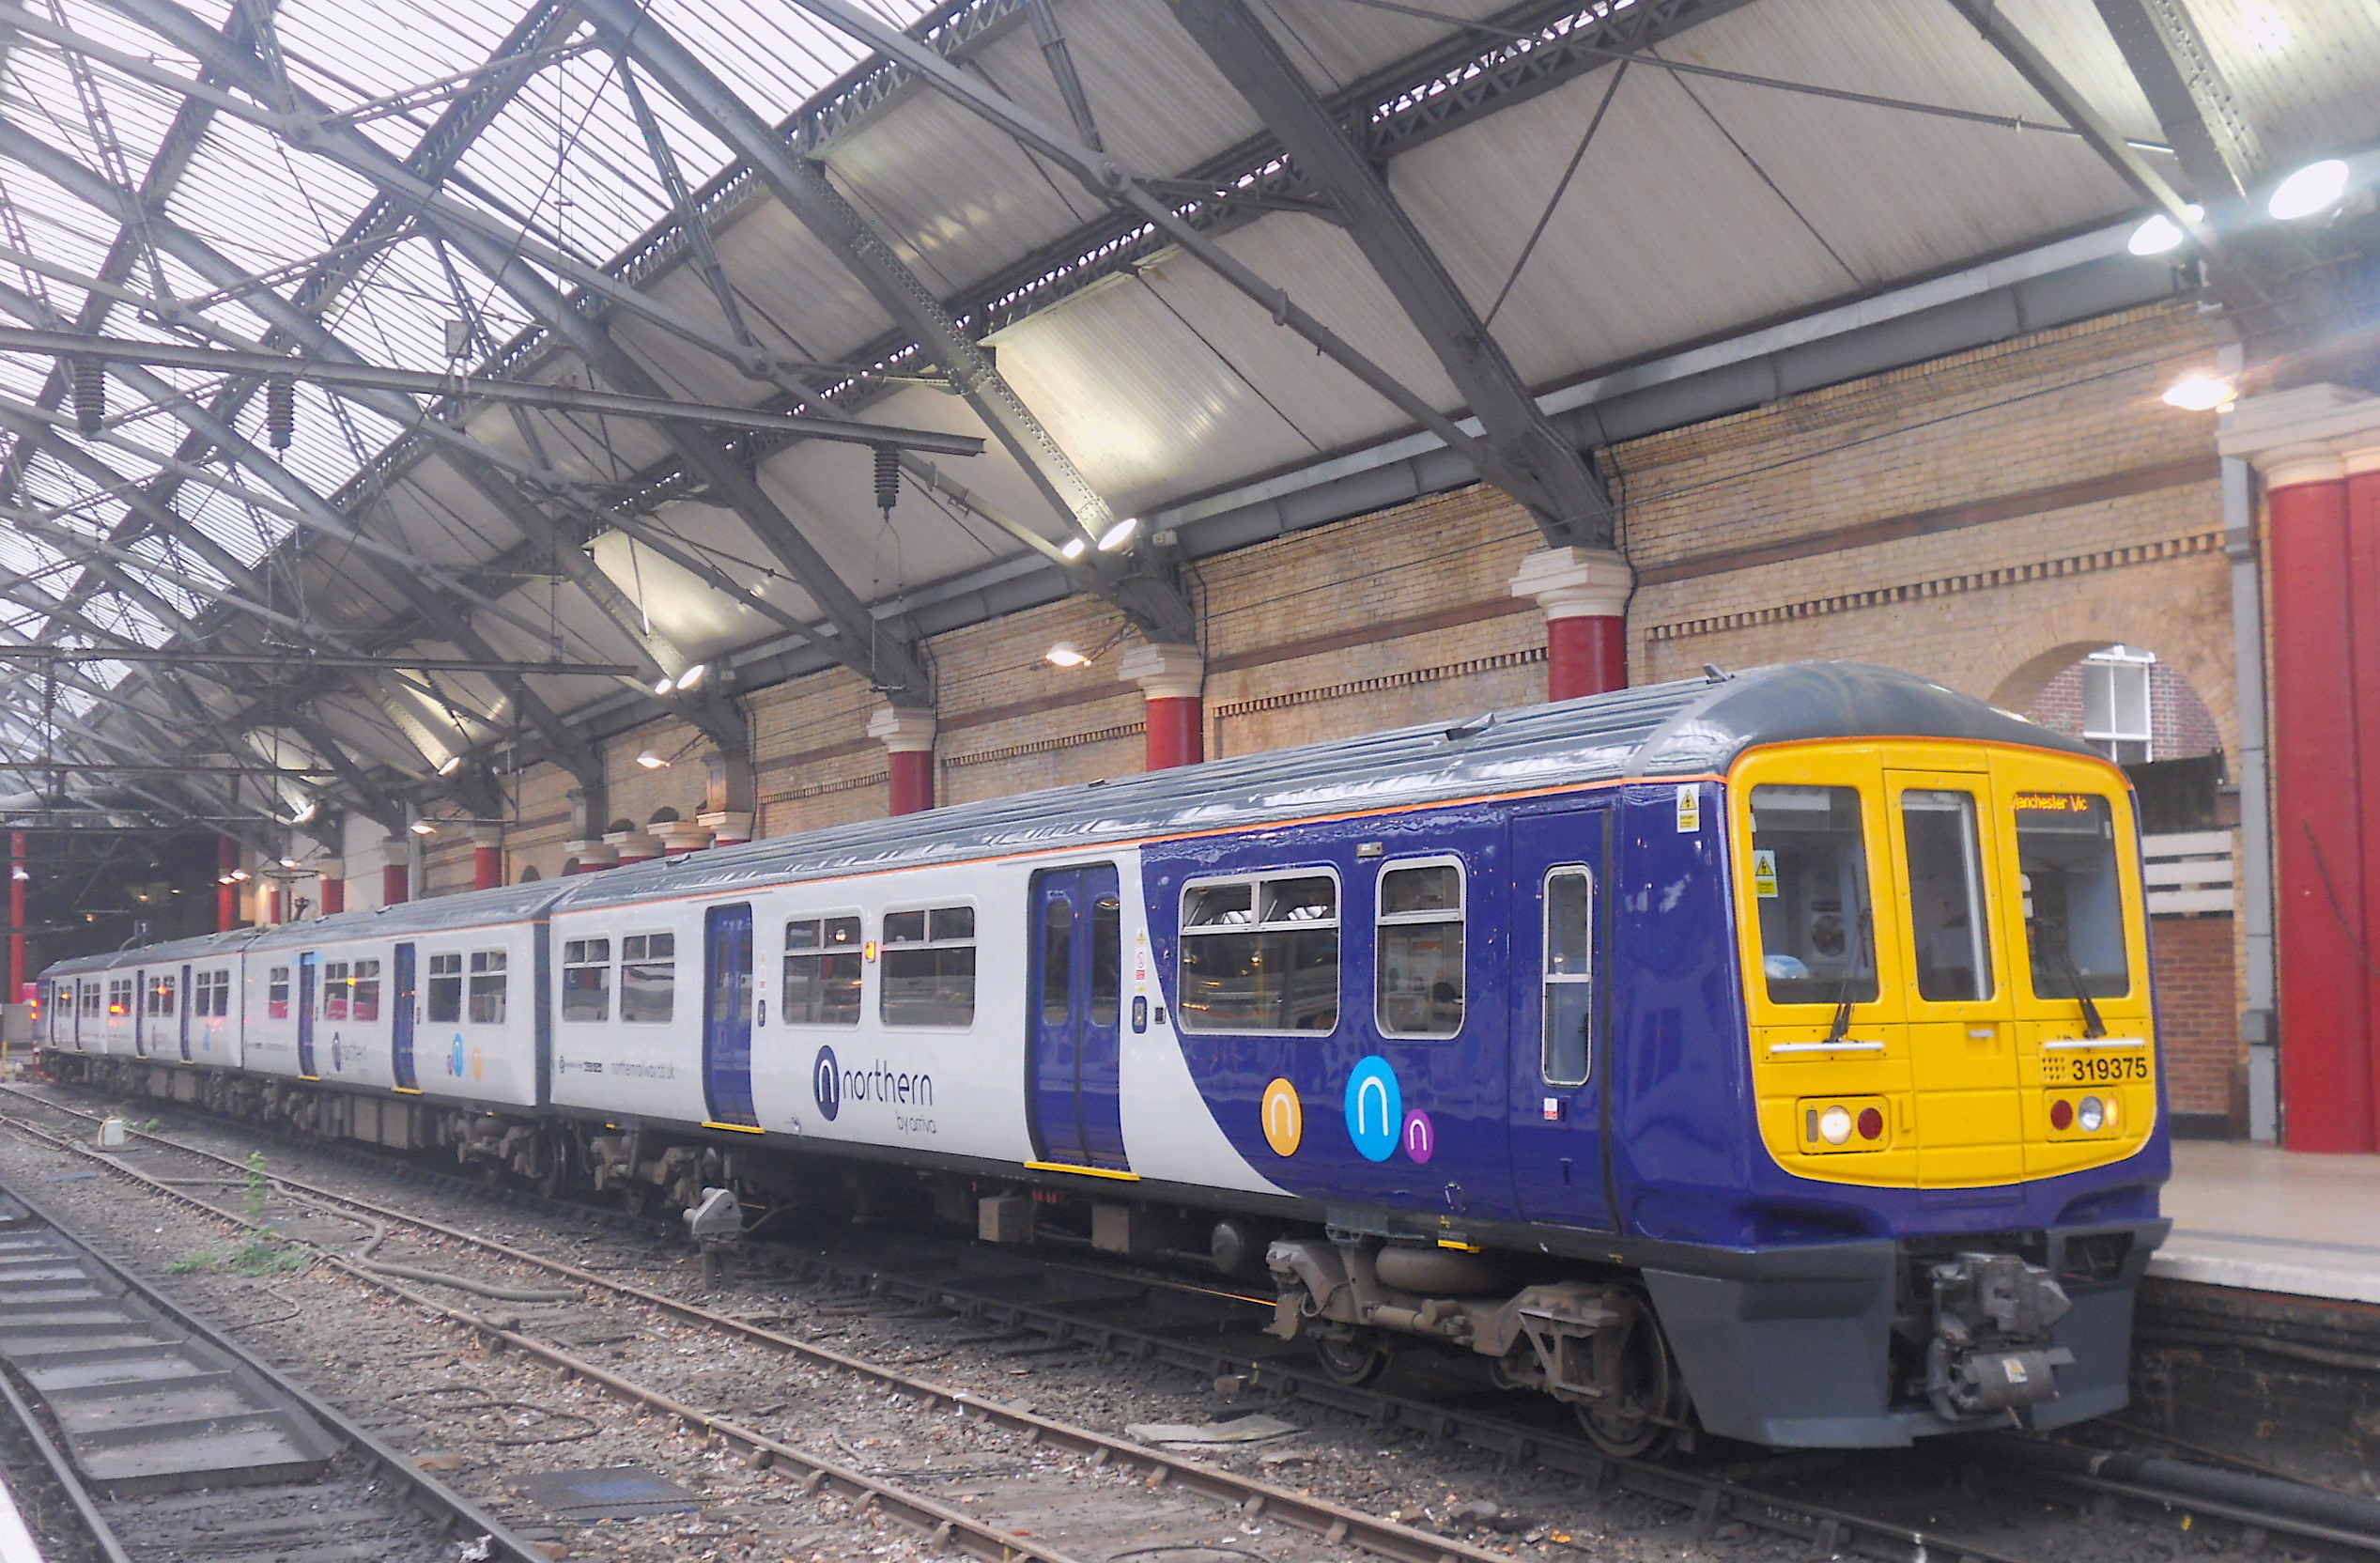 Flickr the uk class 302 304 305 307 308 309 310 312 br slam door - Northern Class 319 3 No 319375 At Liverpool Lime Street